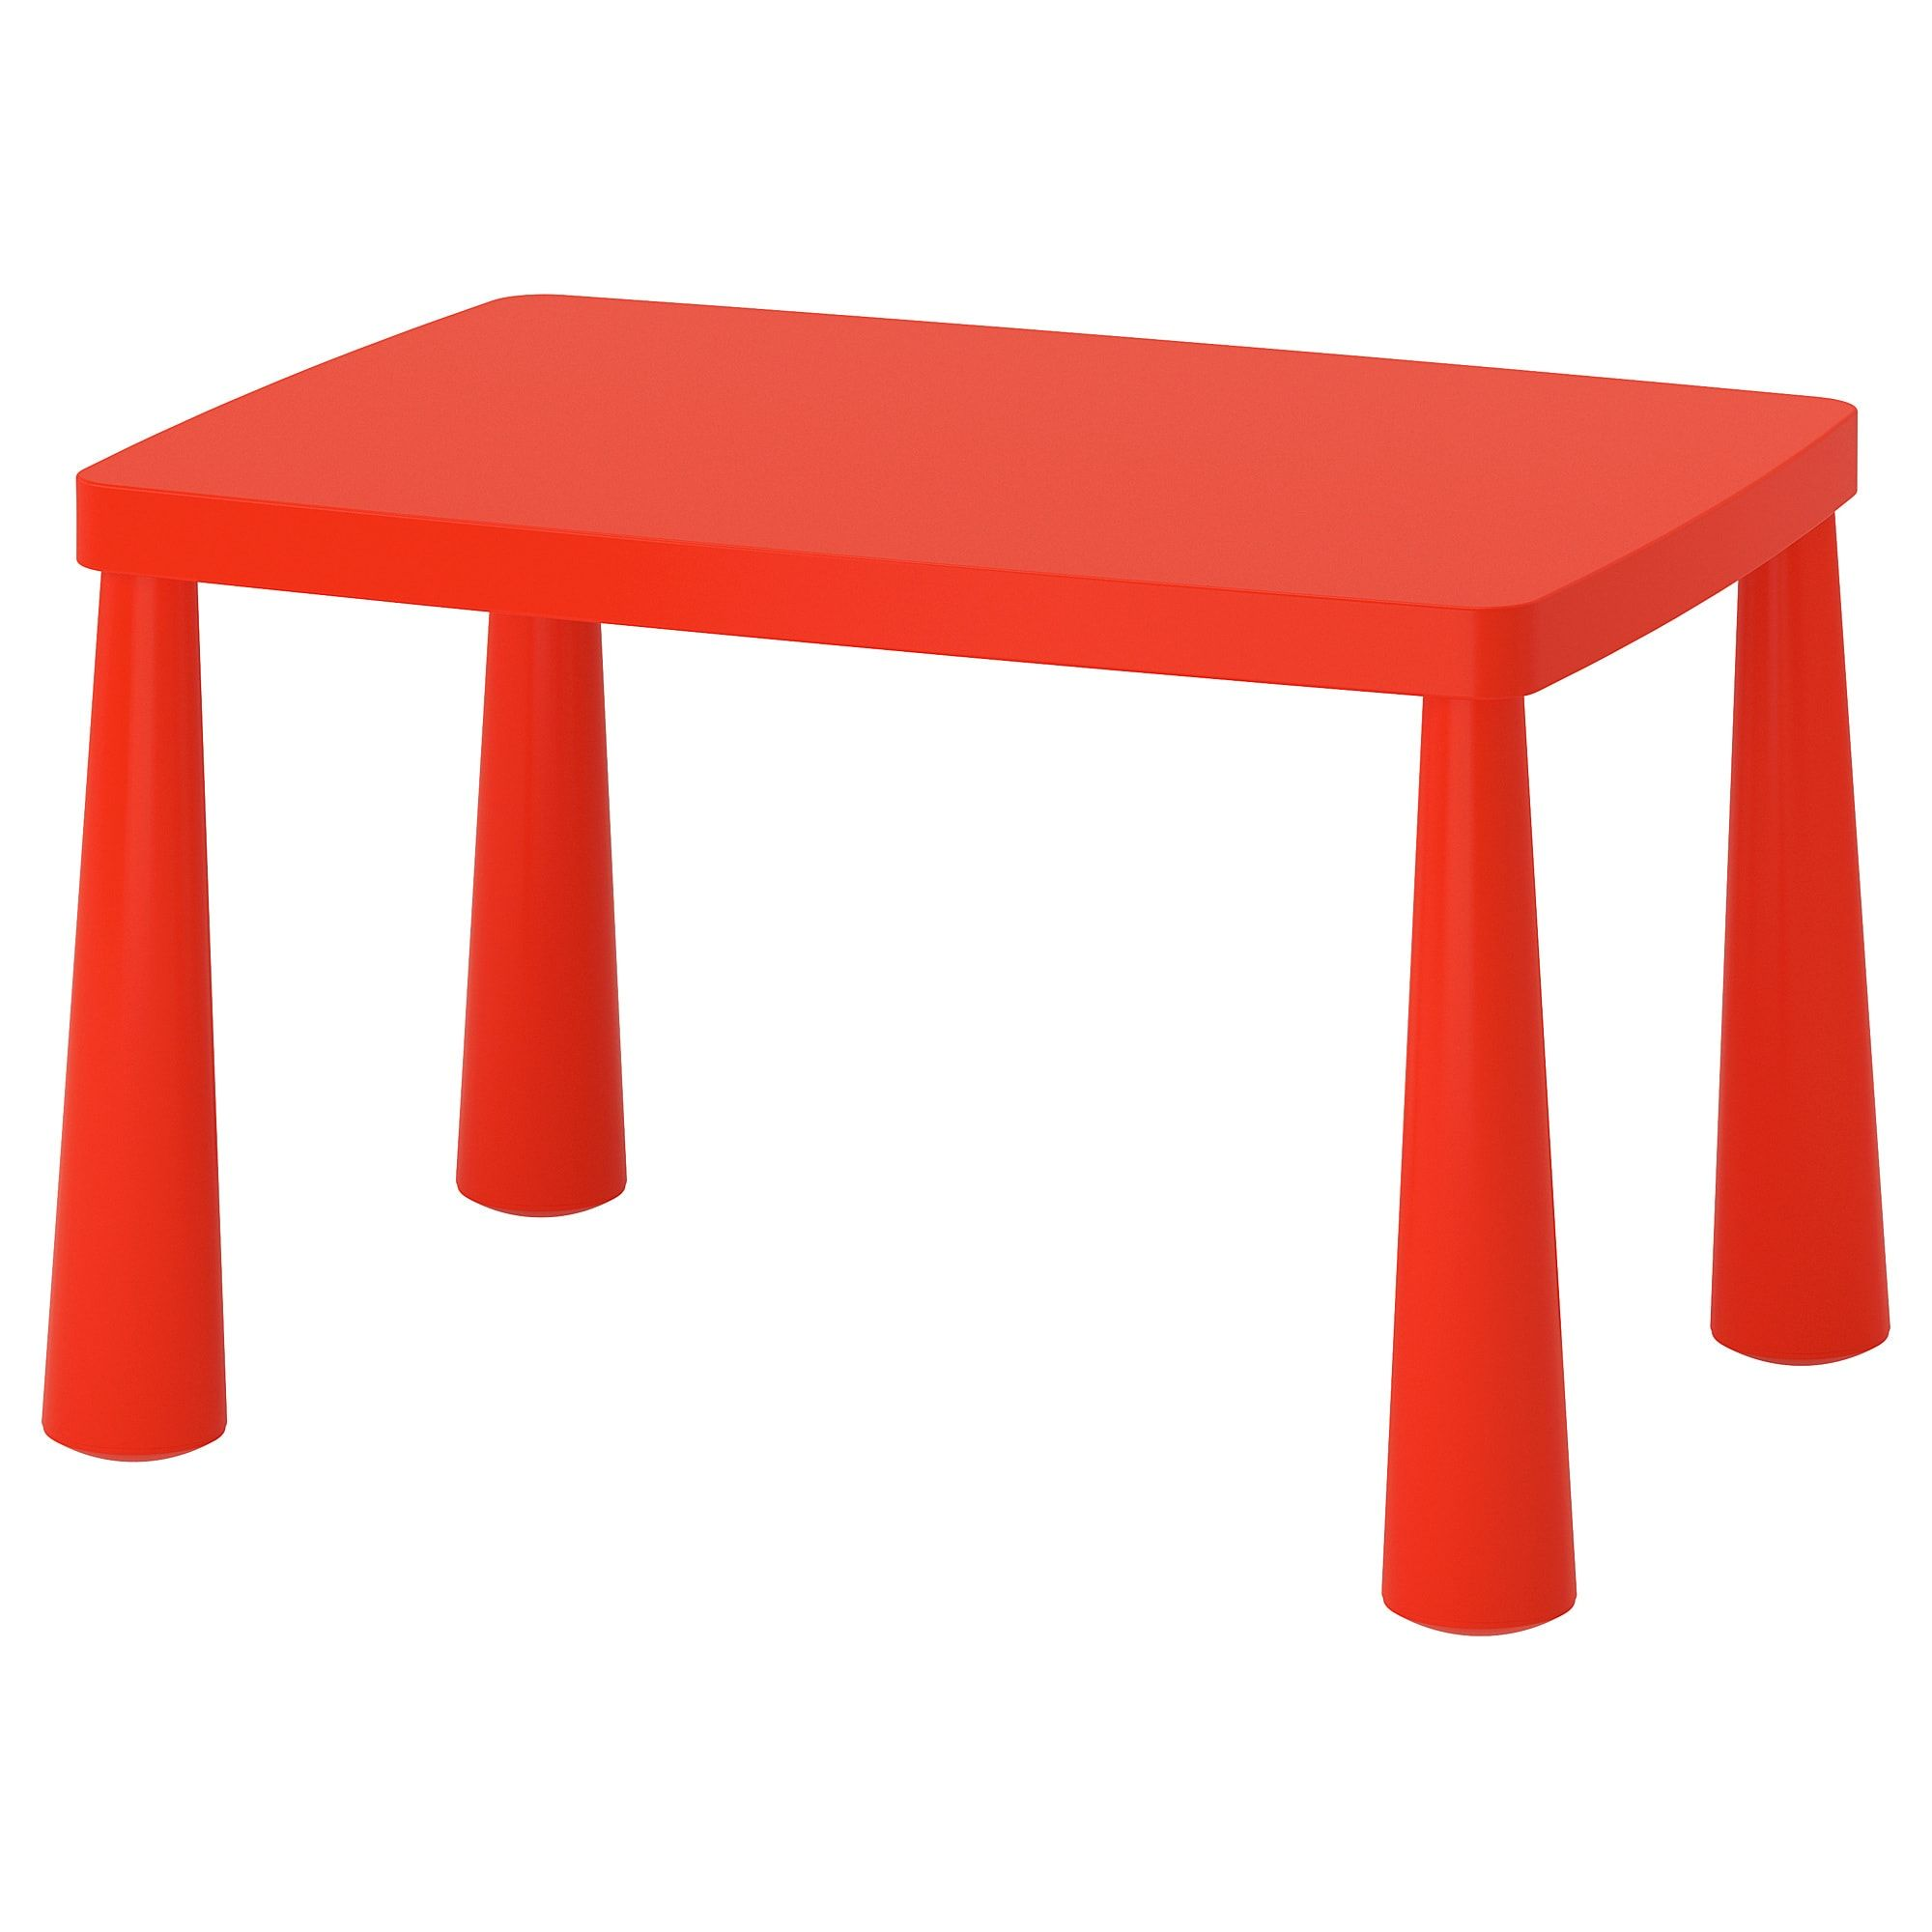 Mammut Children S Table Indoor Outdoor Red Ikea Childrens